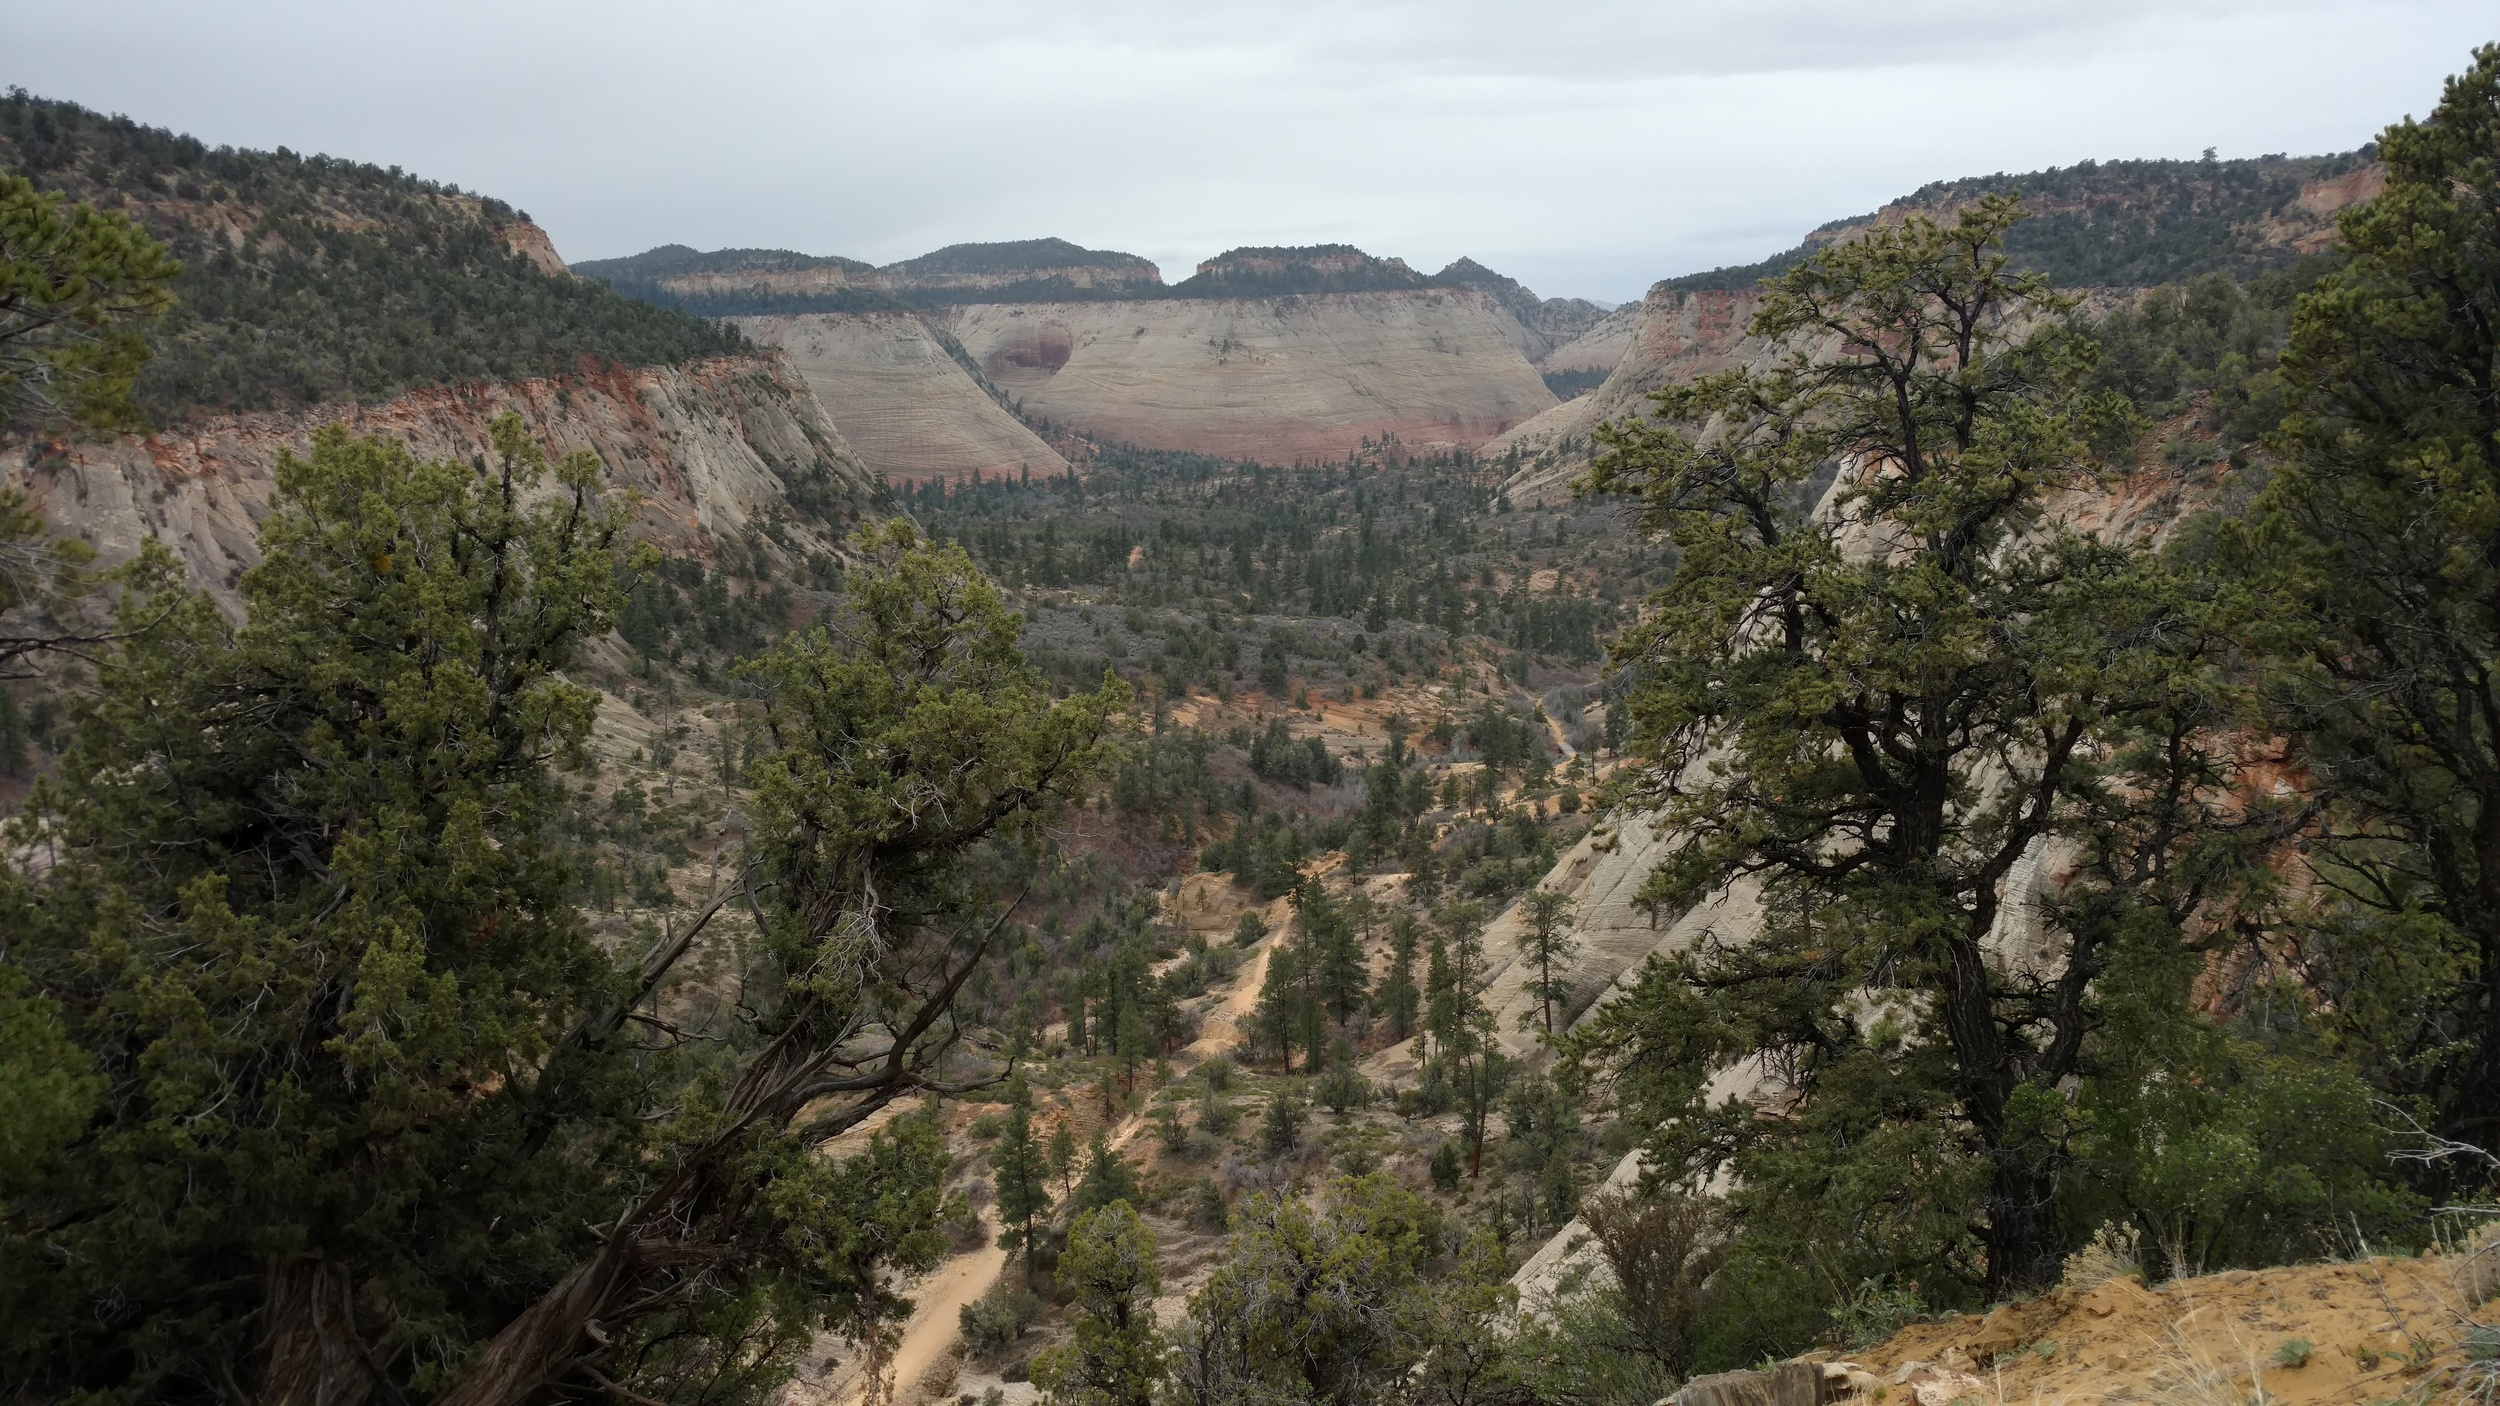 Looking down on the East Rim Trail